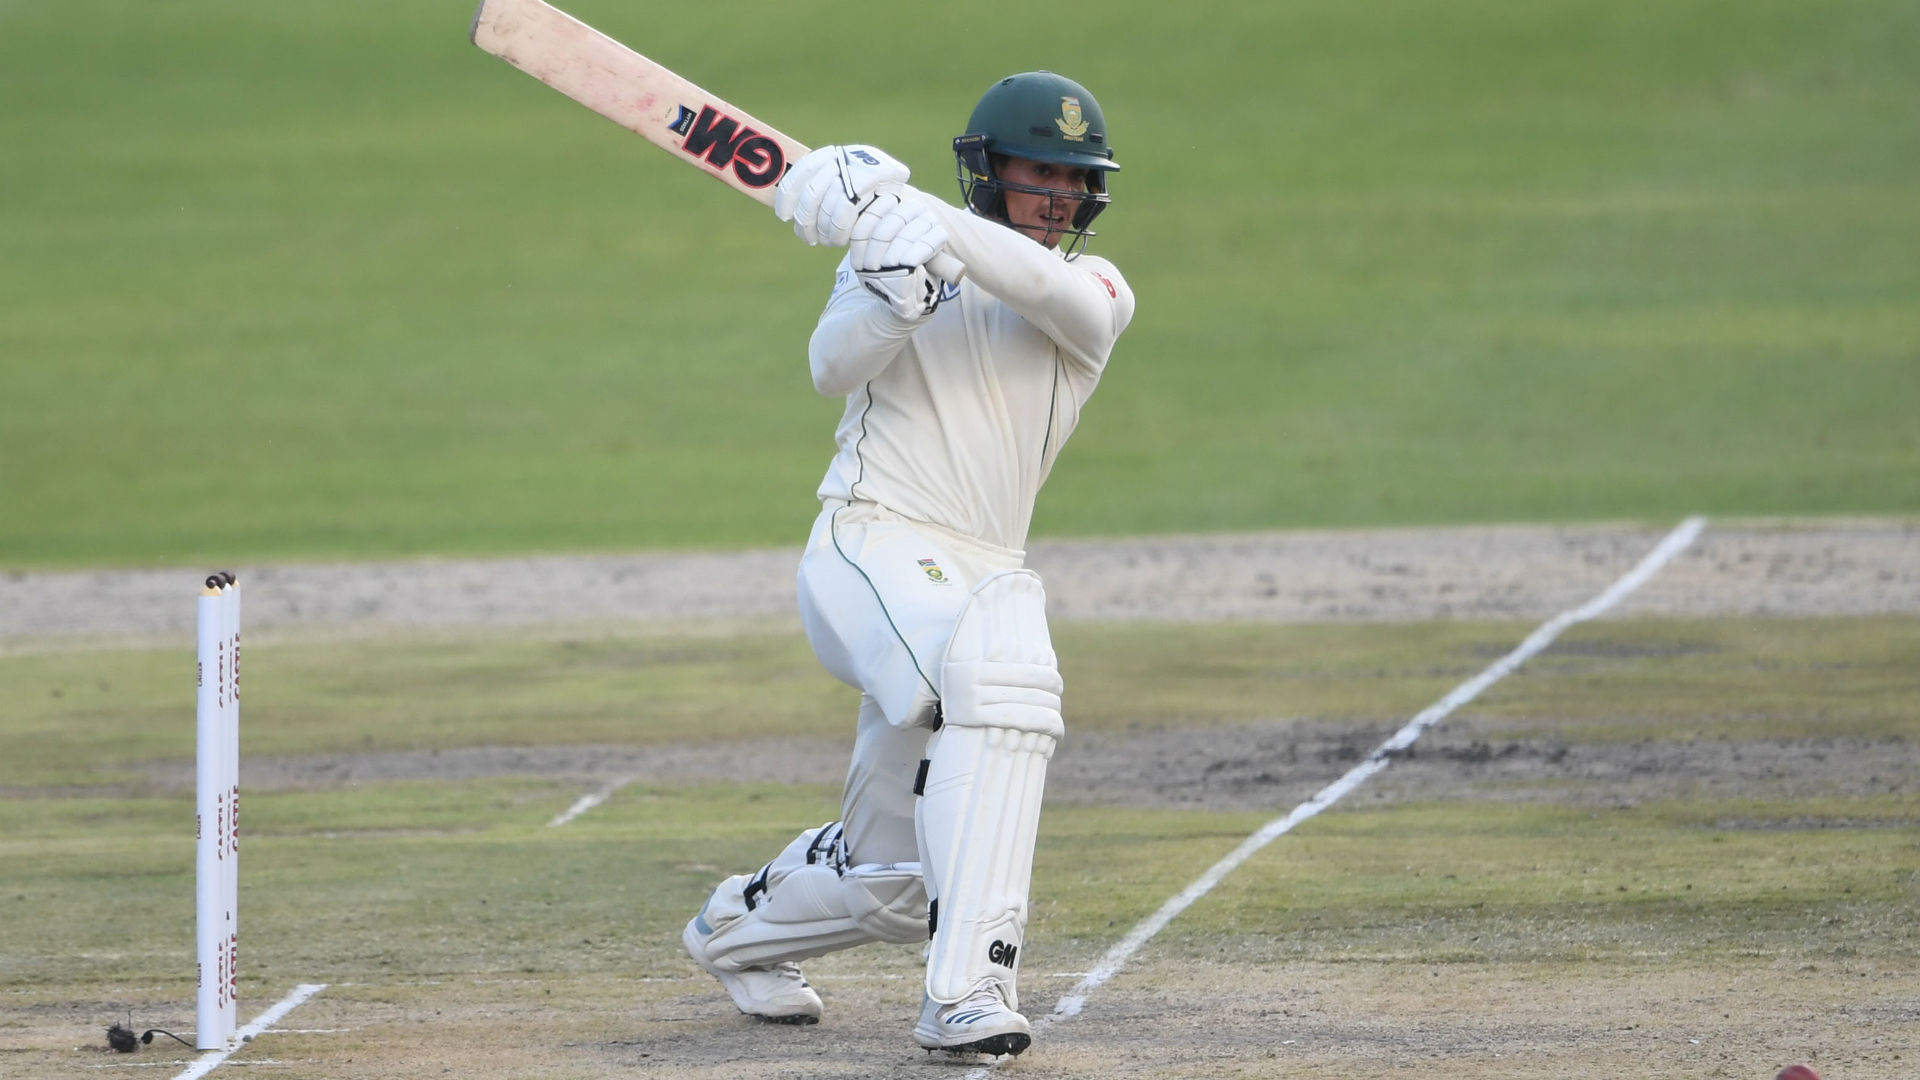 De Kock delighted with rare century